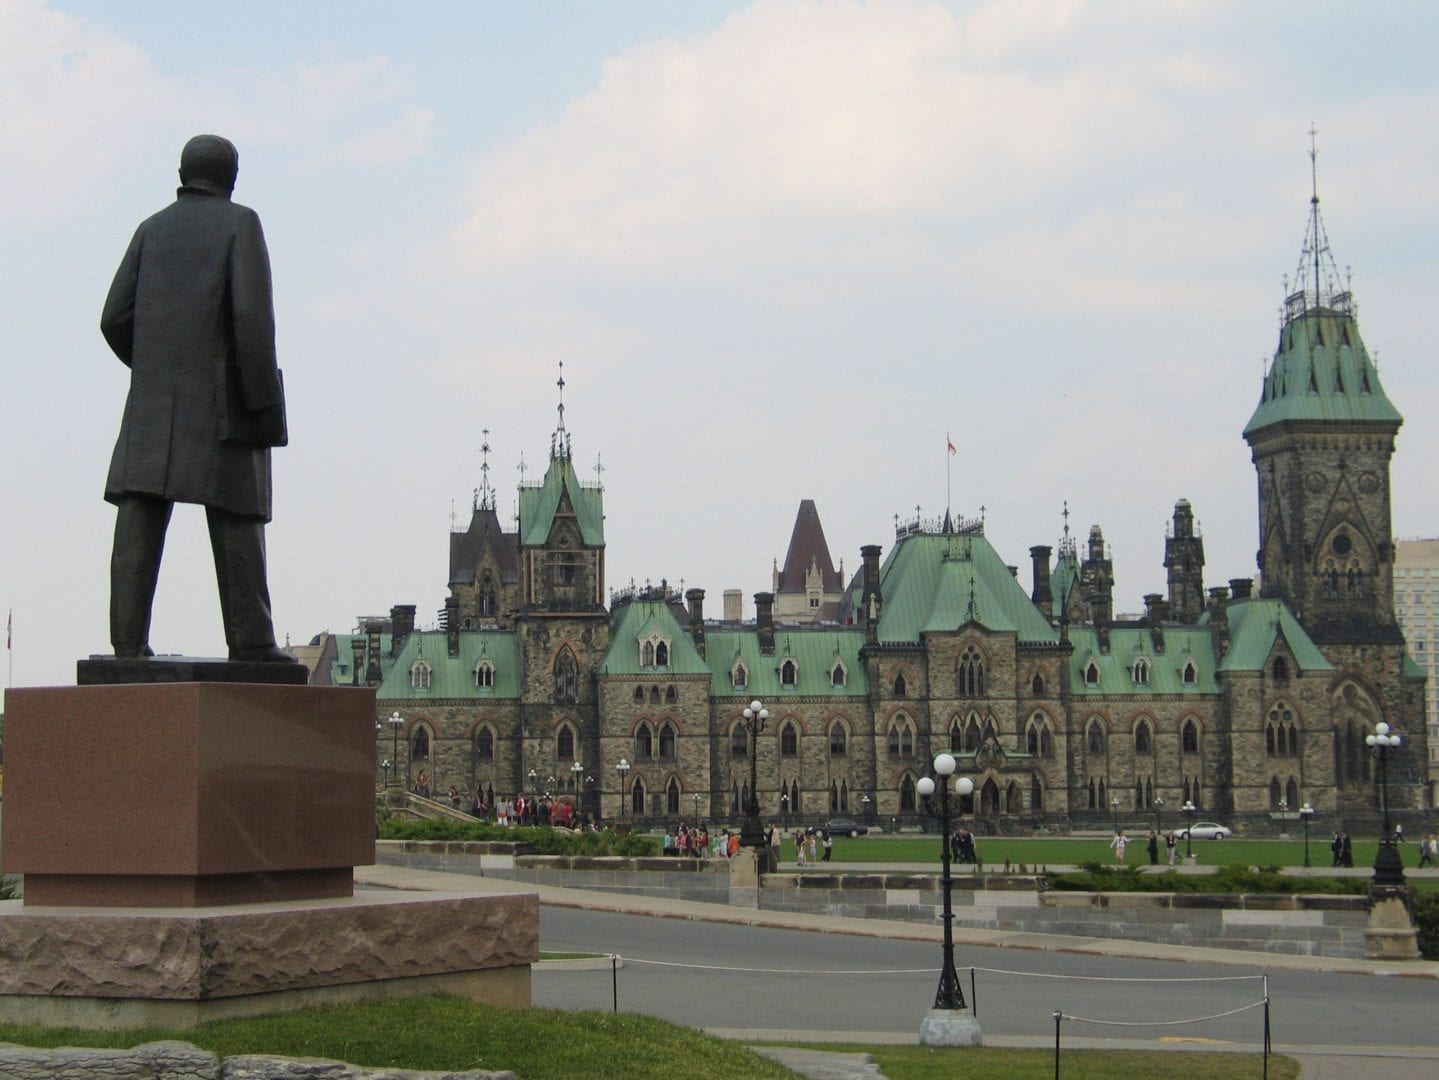 A view of a building in Ottawa